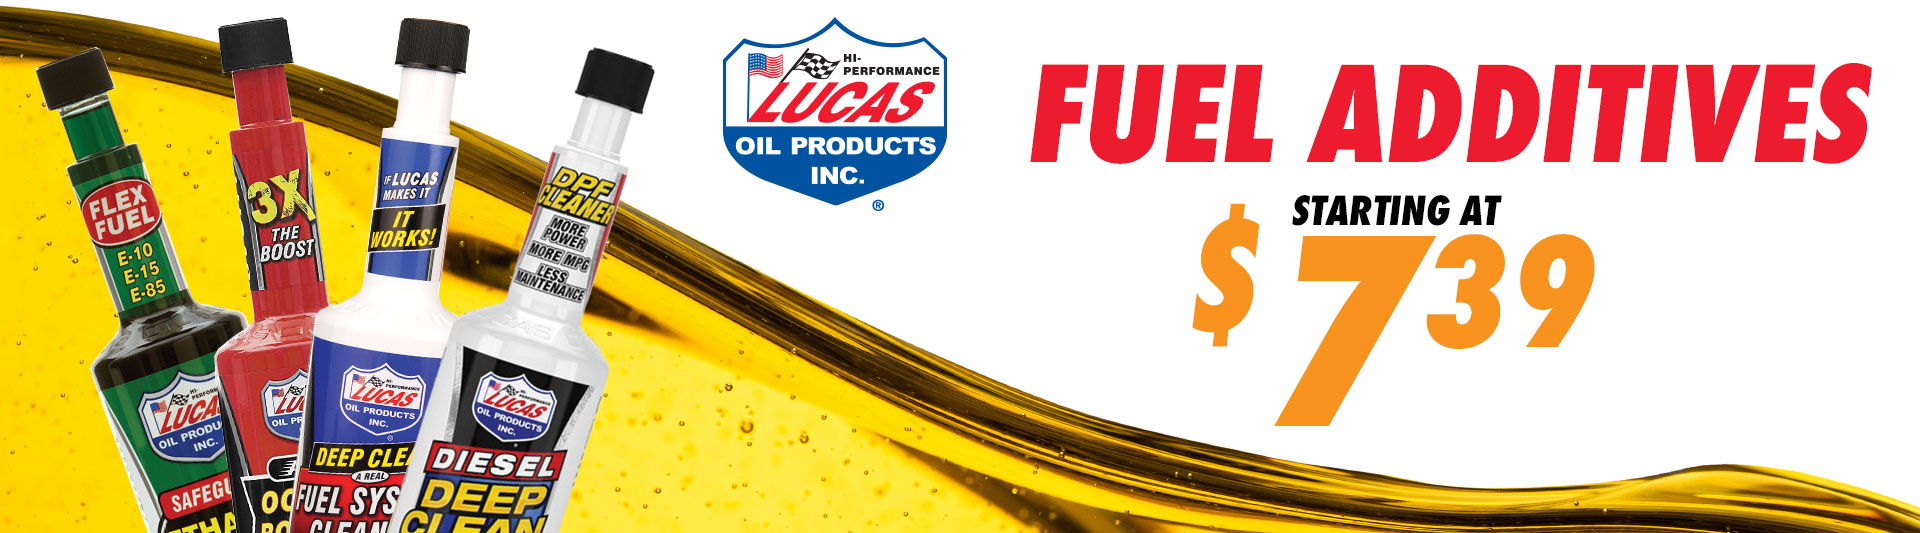 Lucas Oil Fuel Additives starting at $7.39